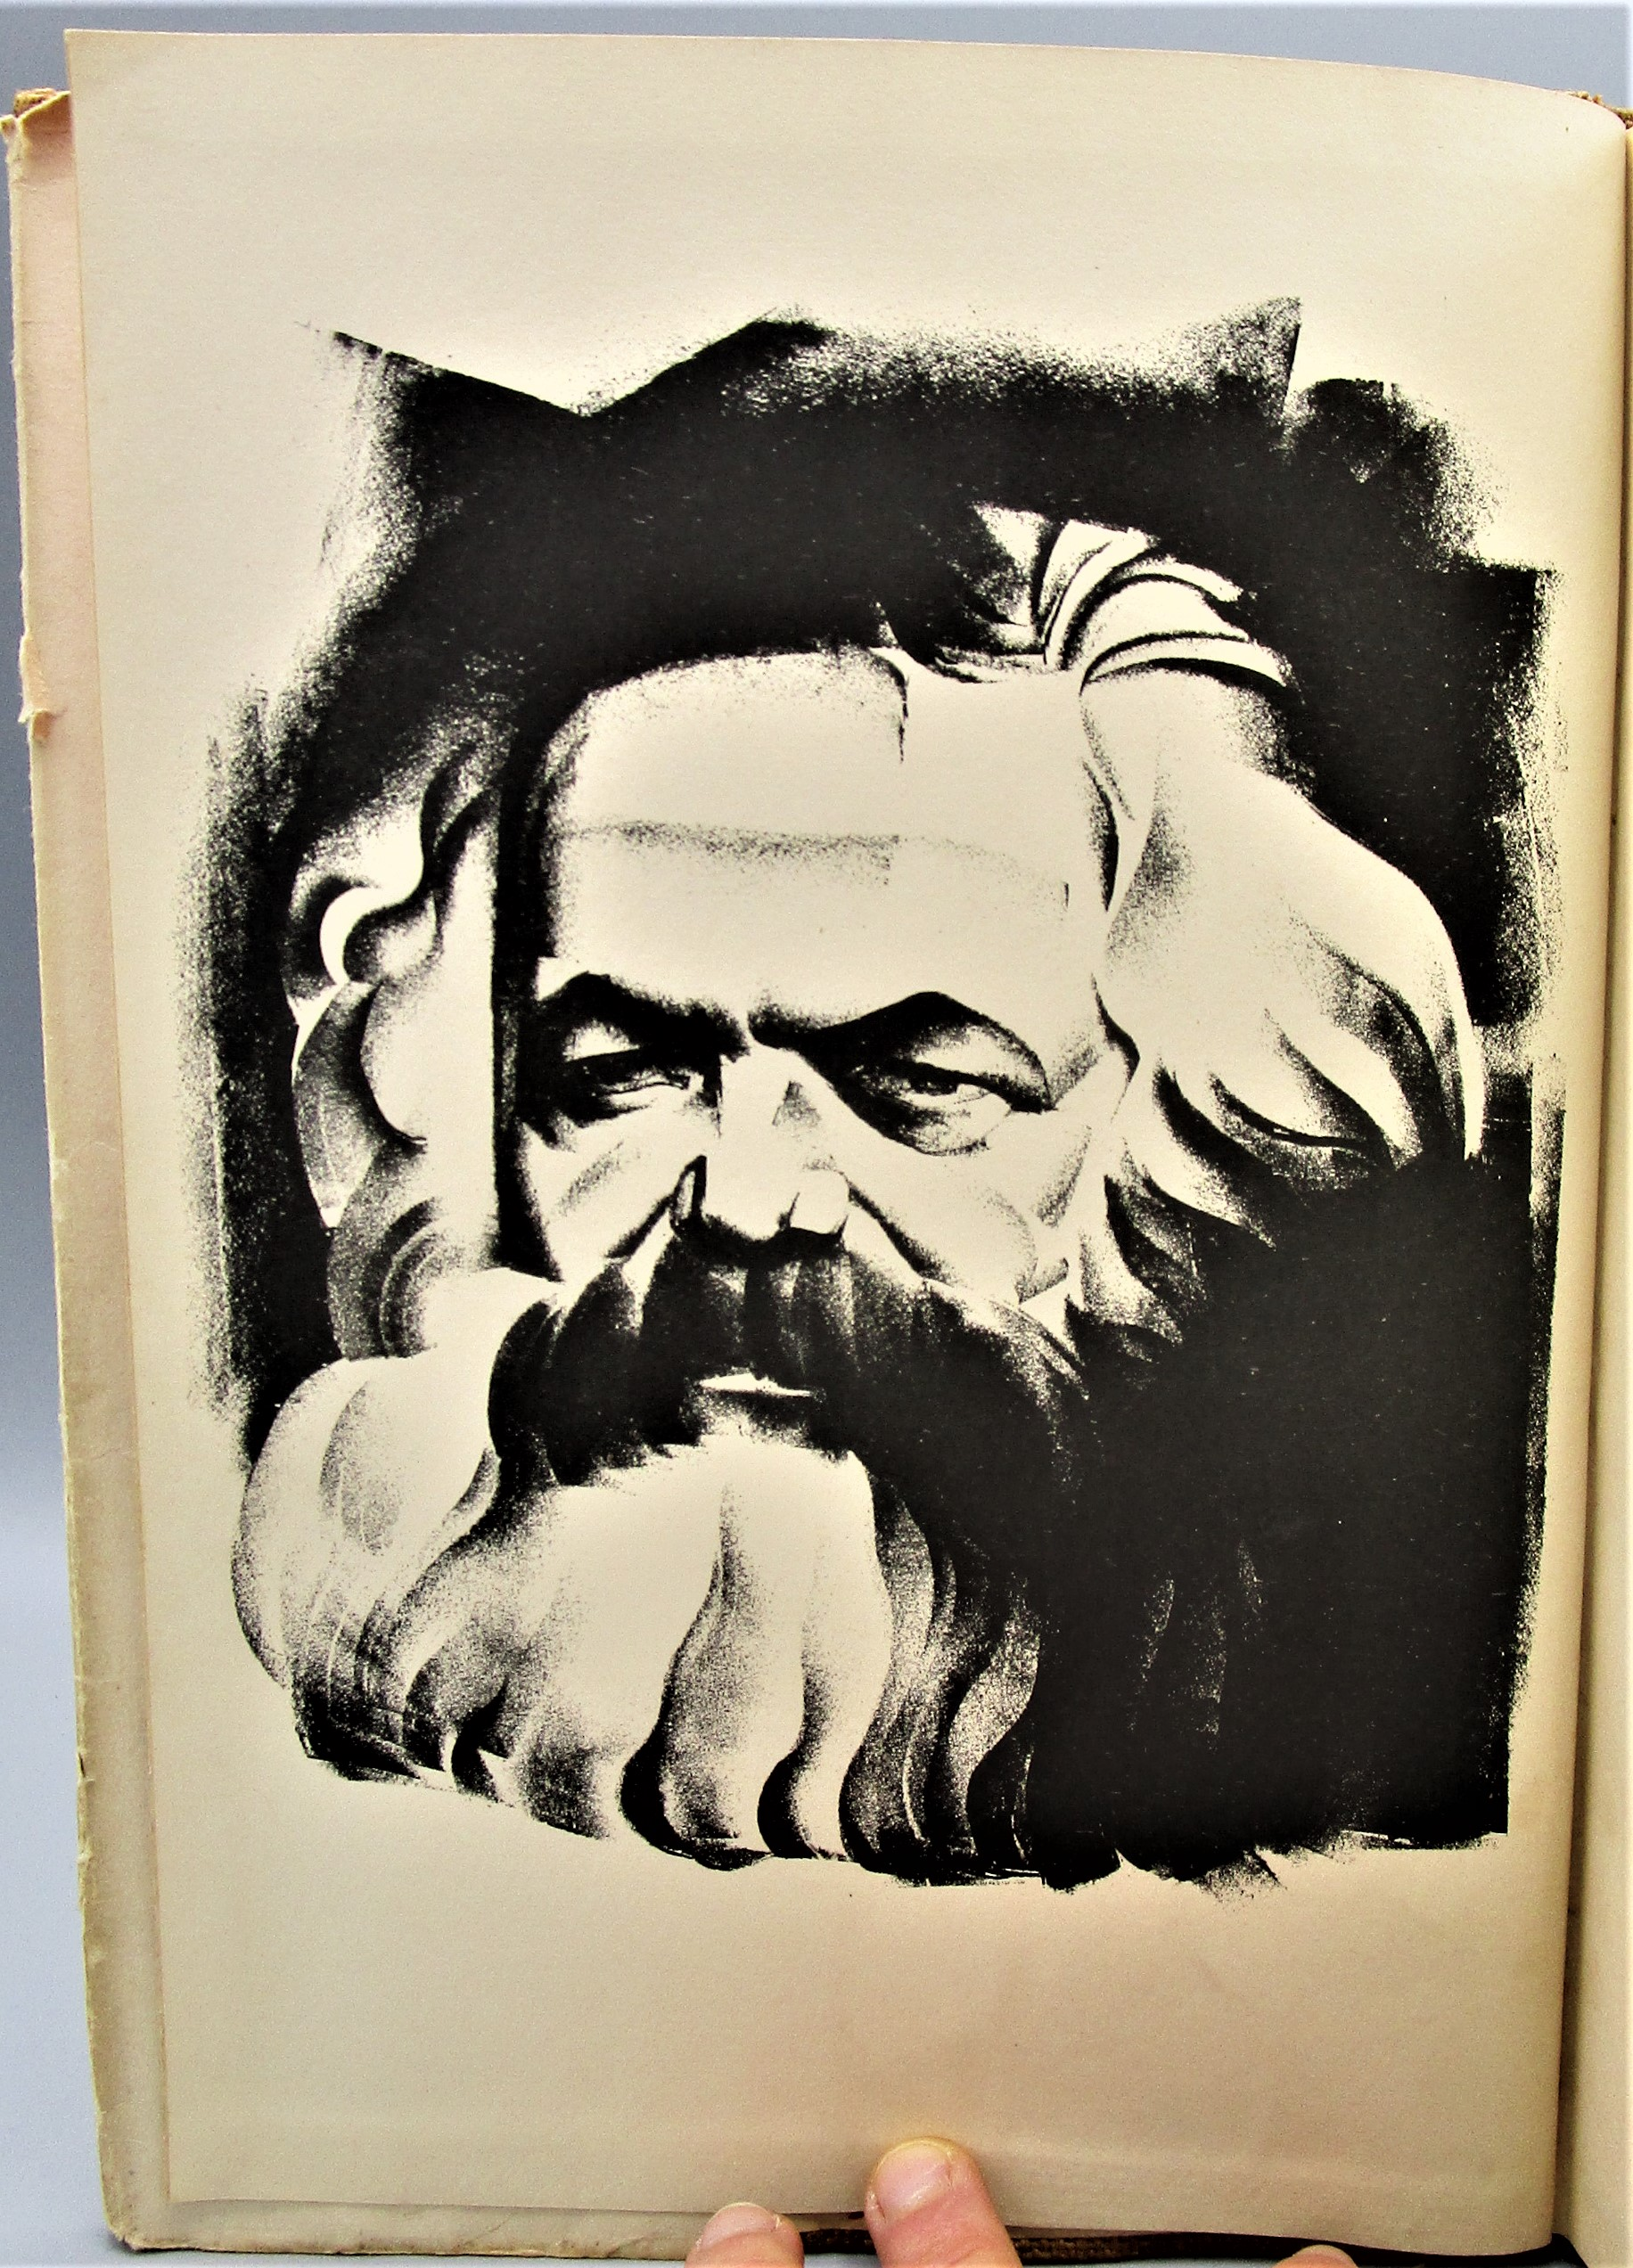 Karl Marx' CAPITAL, In LITHOGRAPHS by Hugo Gellert - 1934 [1st Ed]